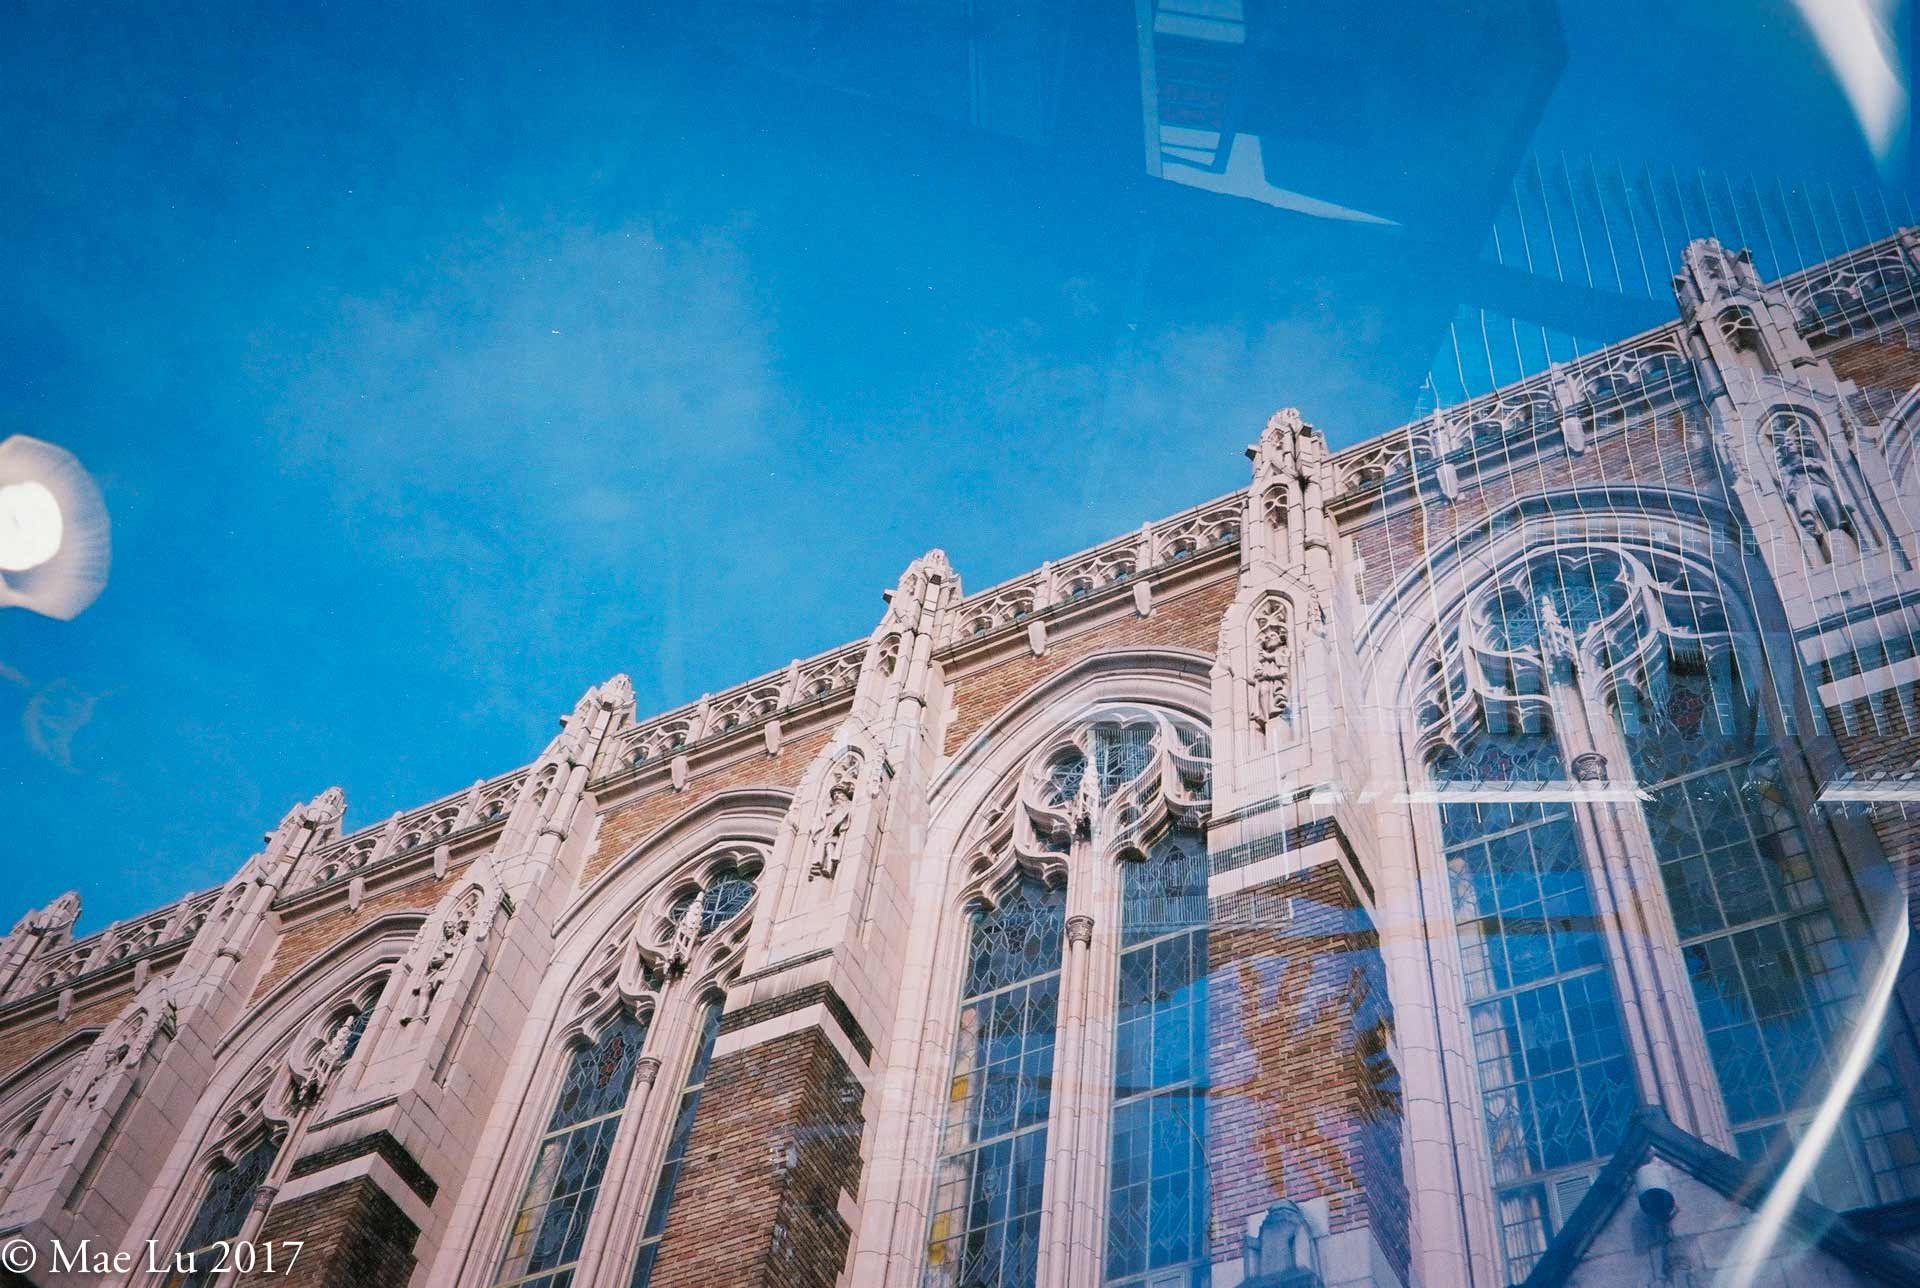 thereafterish film is not dead photo of Suzallo library ornamental decorations on building